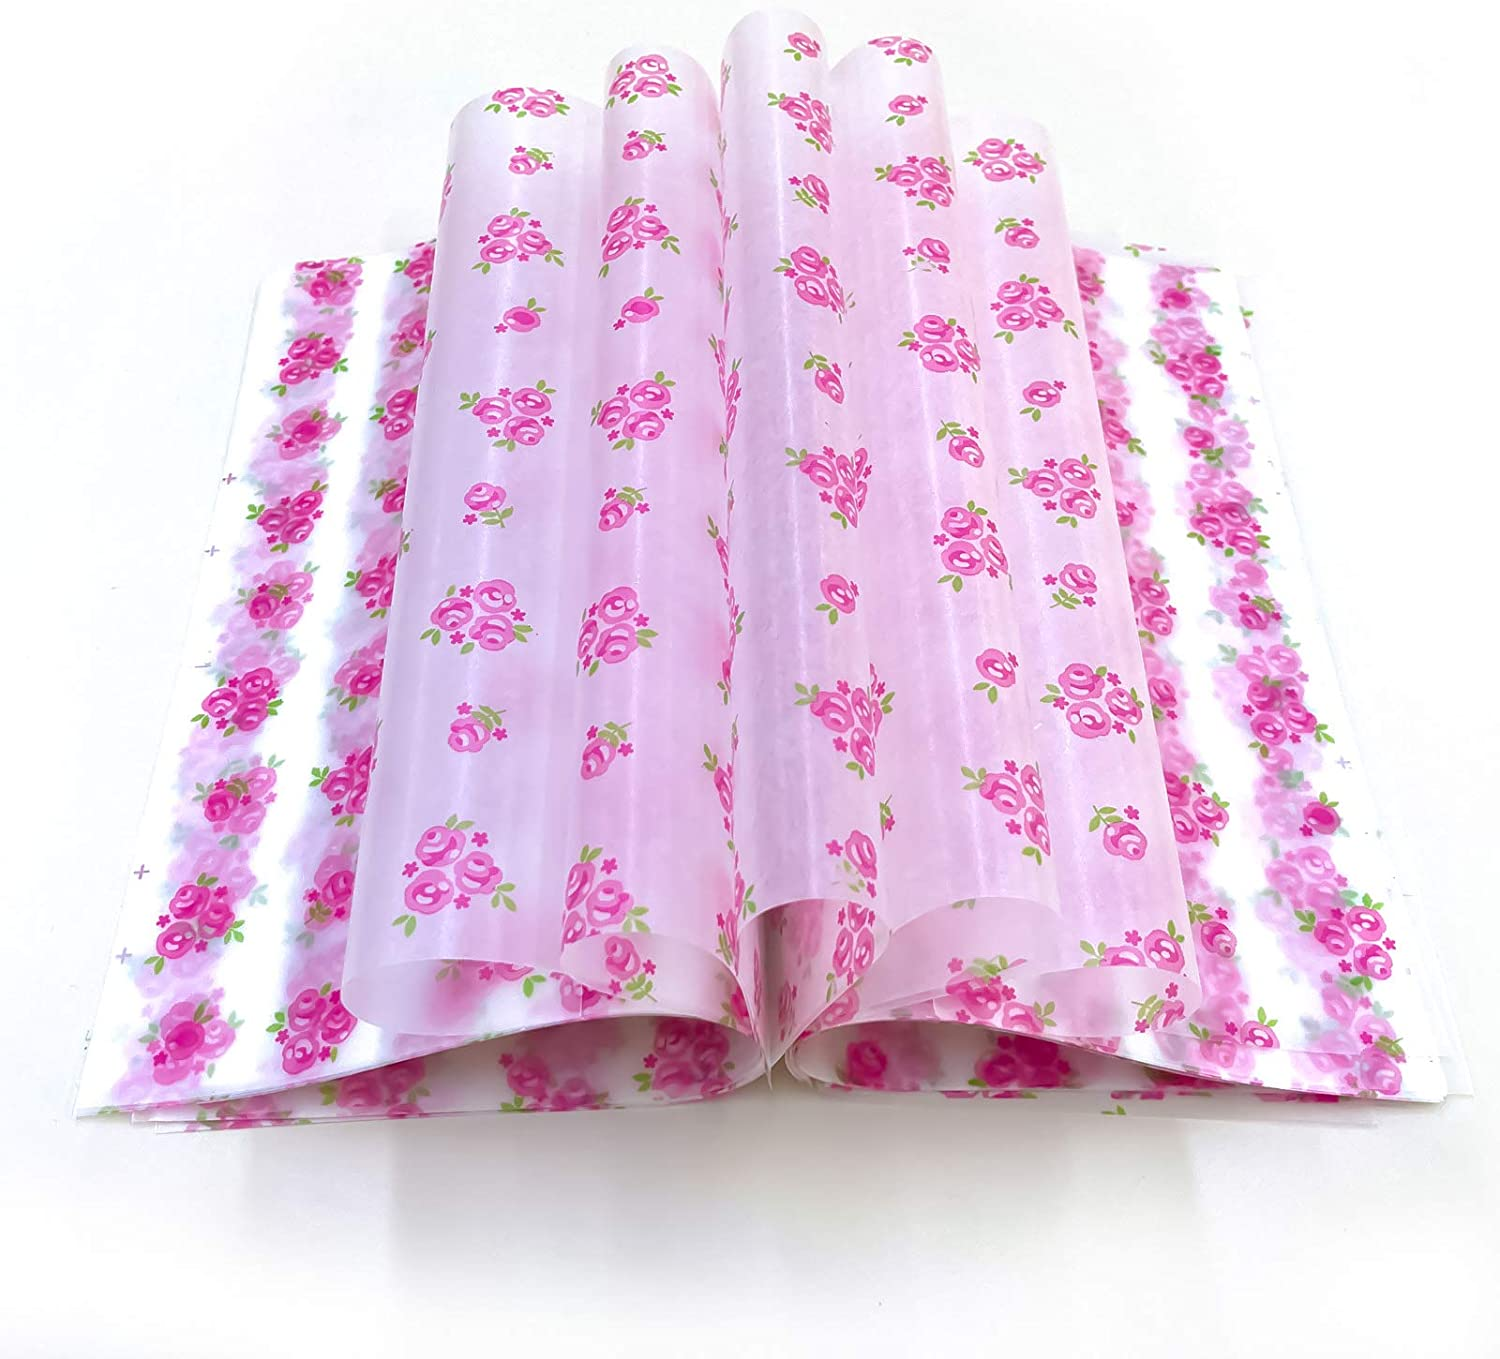 Wax Paper Deli Wraps Food Wrapping Basket Liners Deli Papers for Handmade Soap,Cookies and Carmels (100 sheets, Rose)